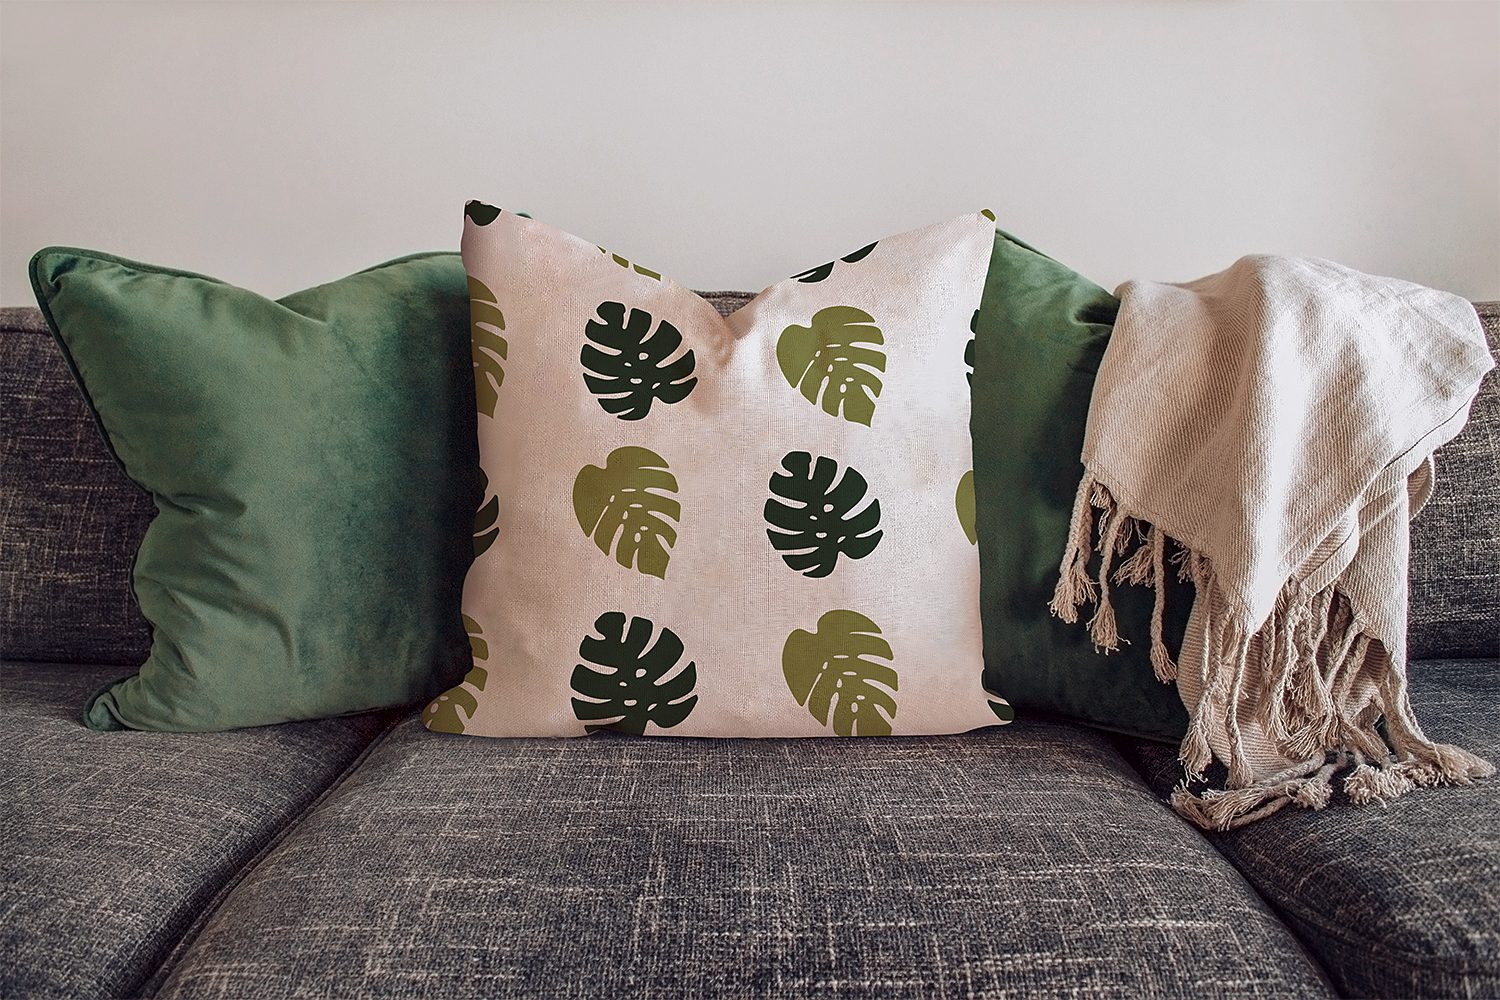 Free Pillow Mockup on the Sofa